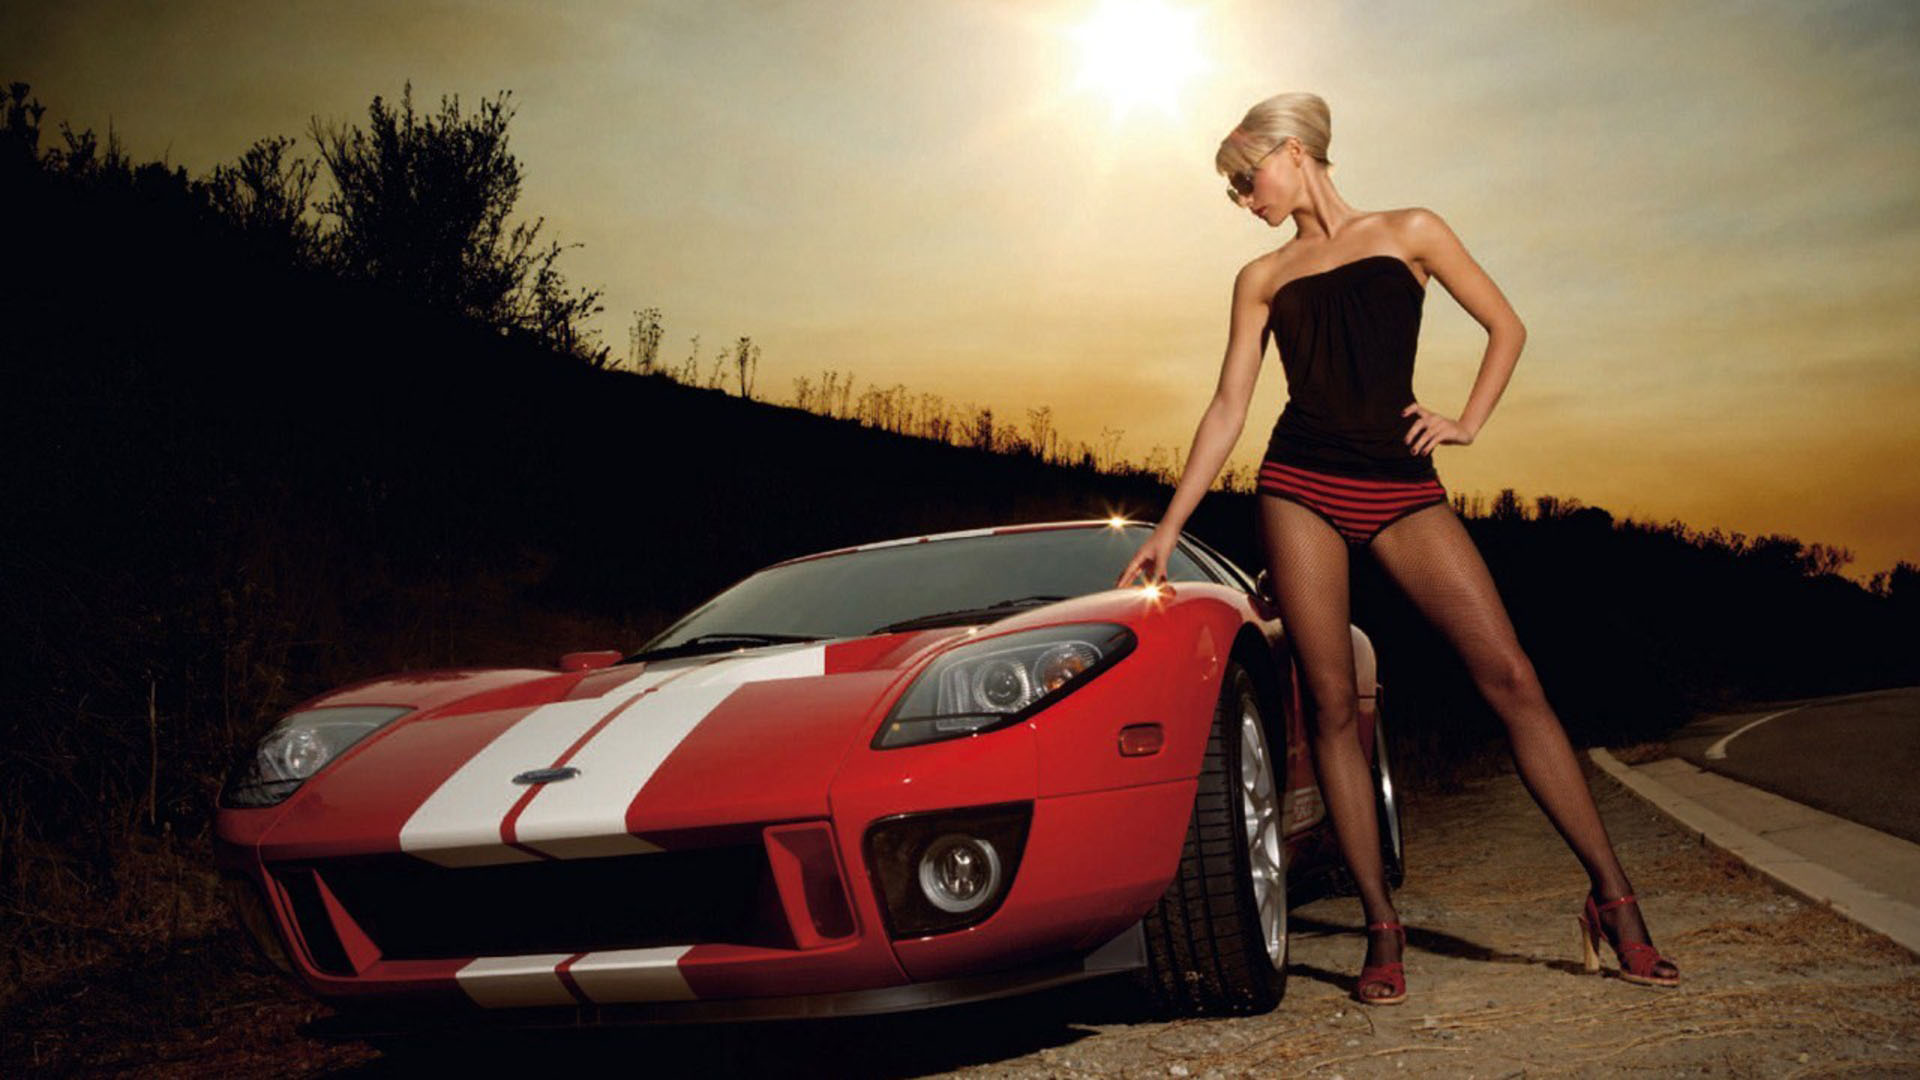 sexy cars and girls wallpaper and pictures 44 - Super Cool Cars With Girls